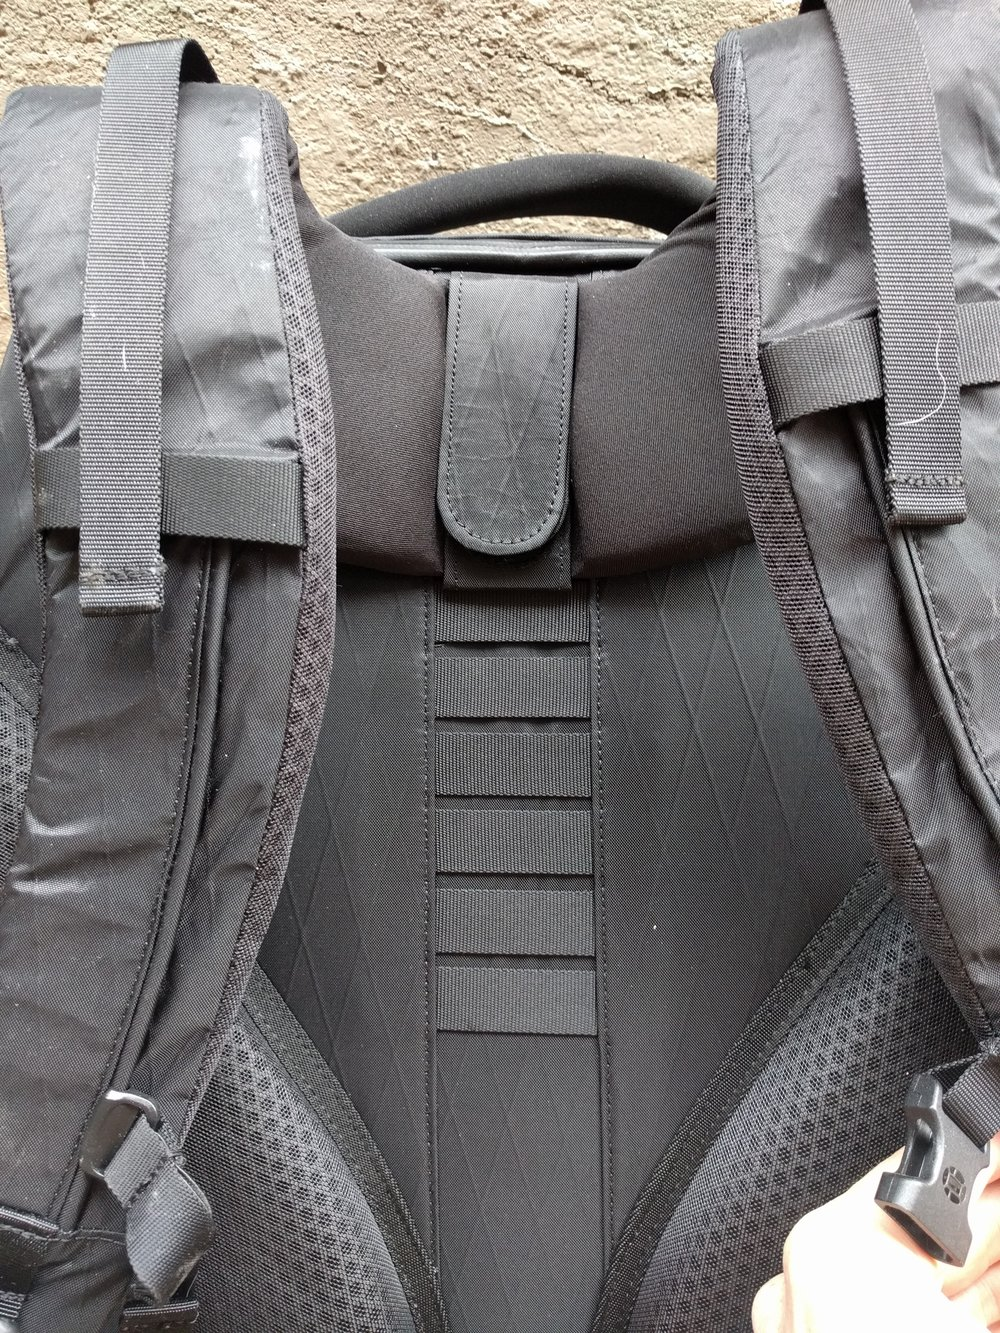 Here you can see the velcro system that allows the Tortuga Outbreaker's shoulder straps to be moved up and down the back of the bags.